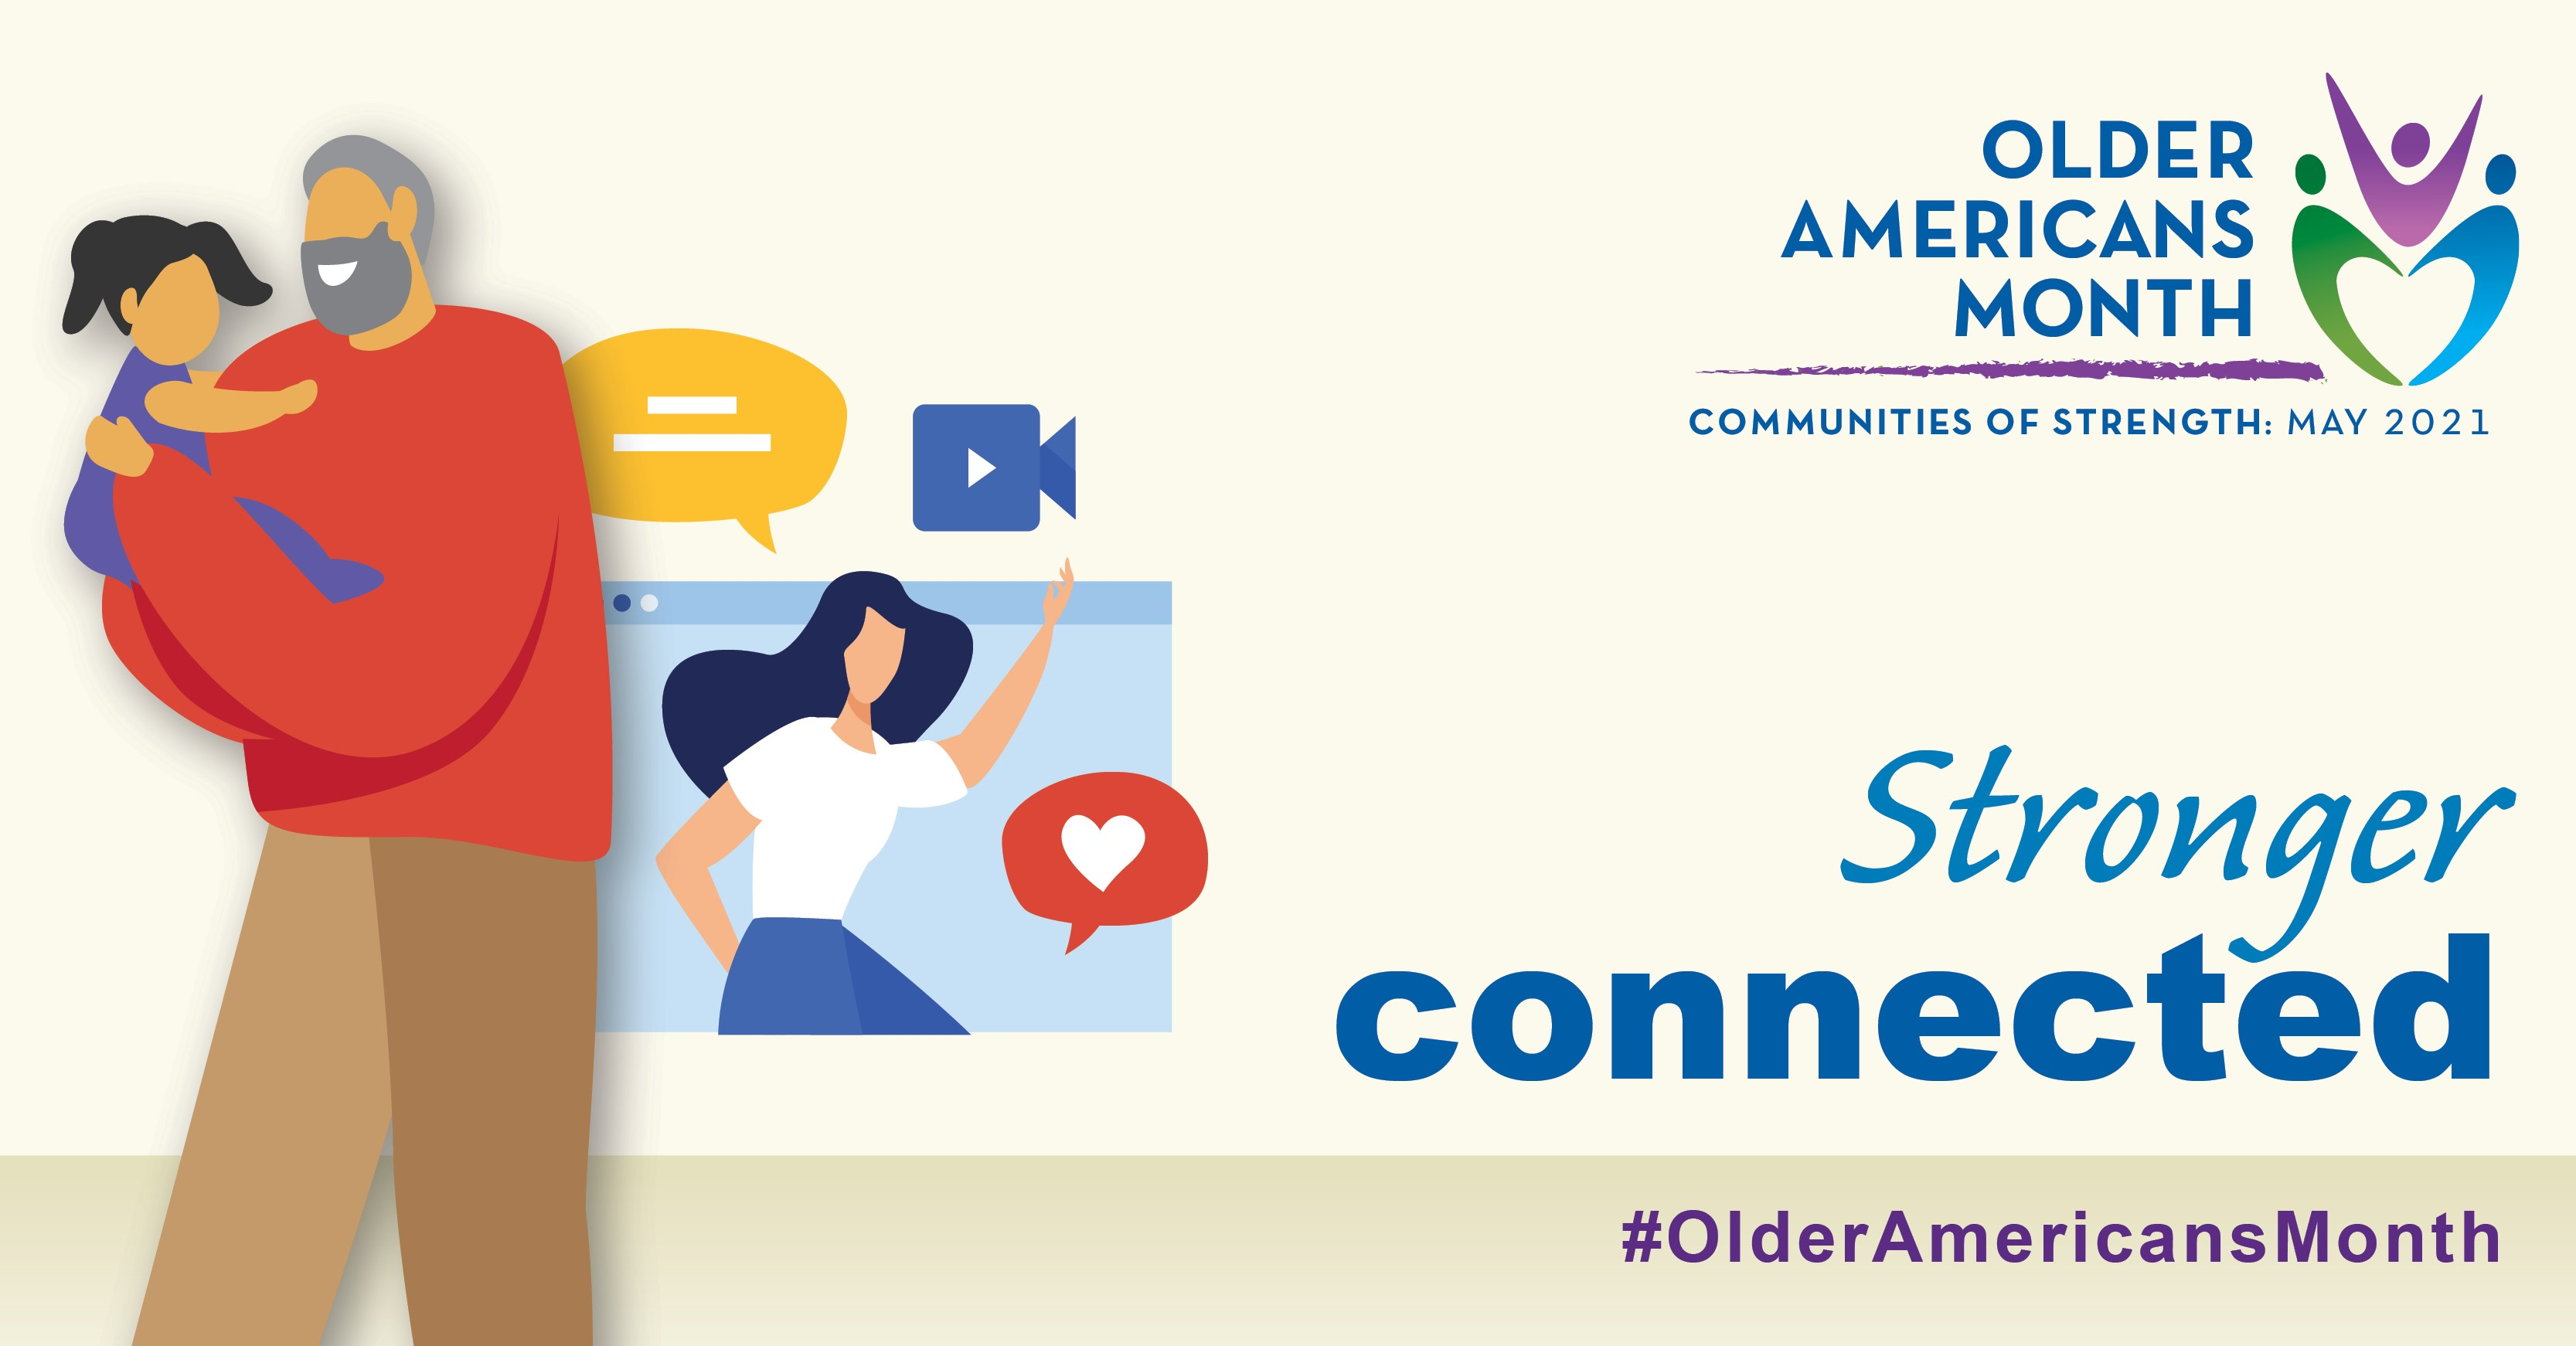 Social Media Graphic: Communities of Strength, Older Americans Month, May 2021. Stronger Connected. #OlderAmericansMonth